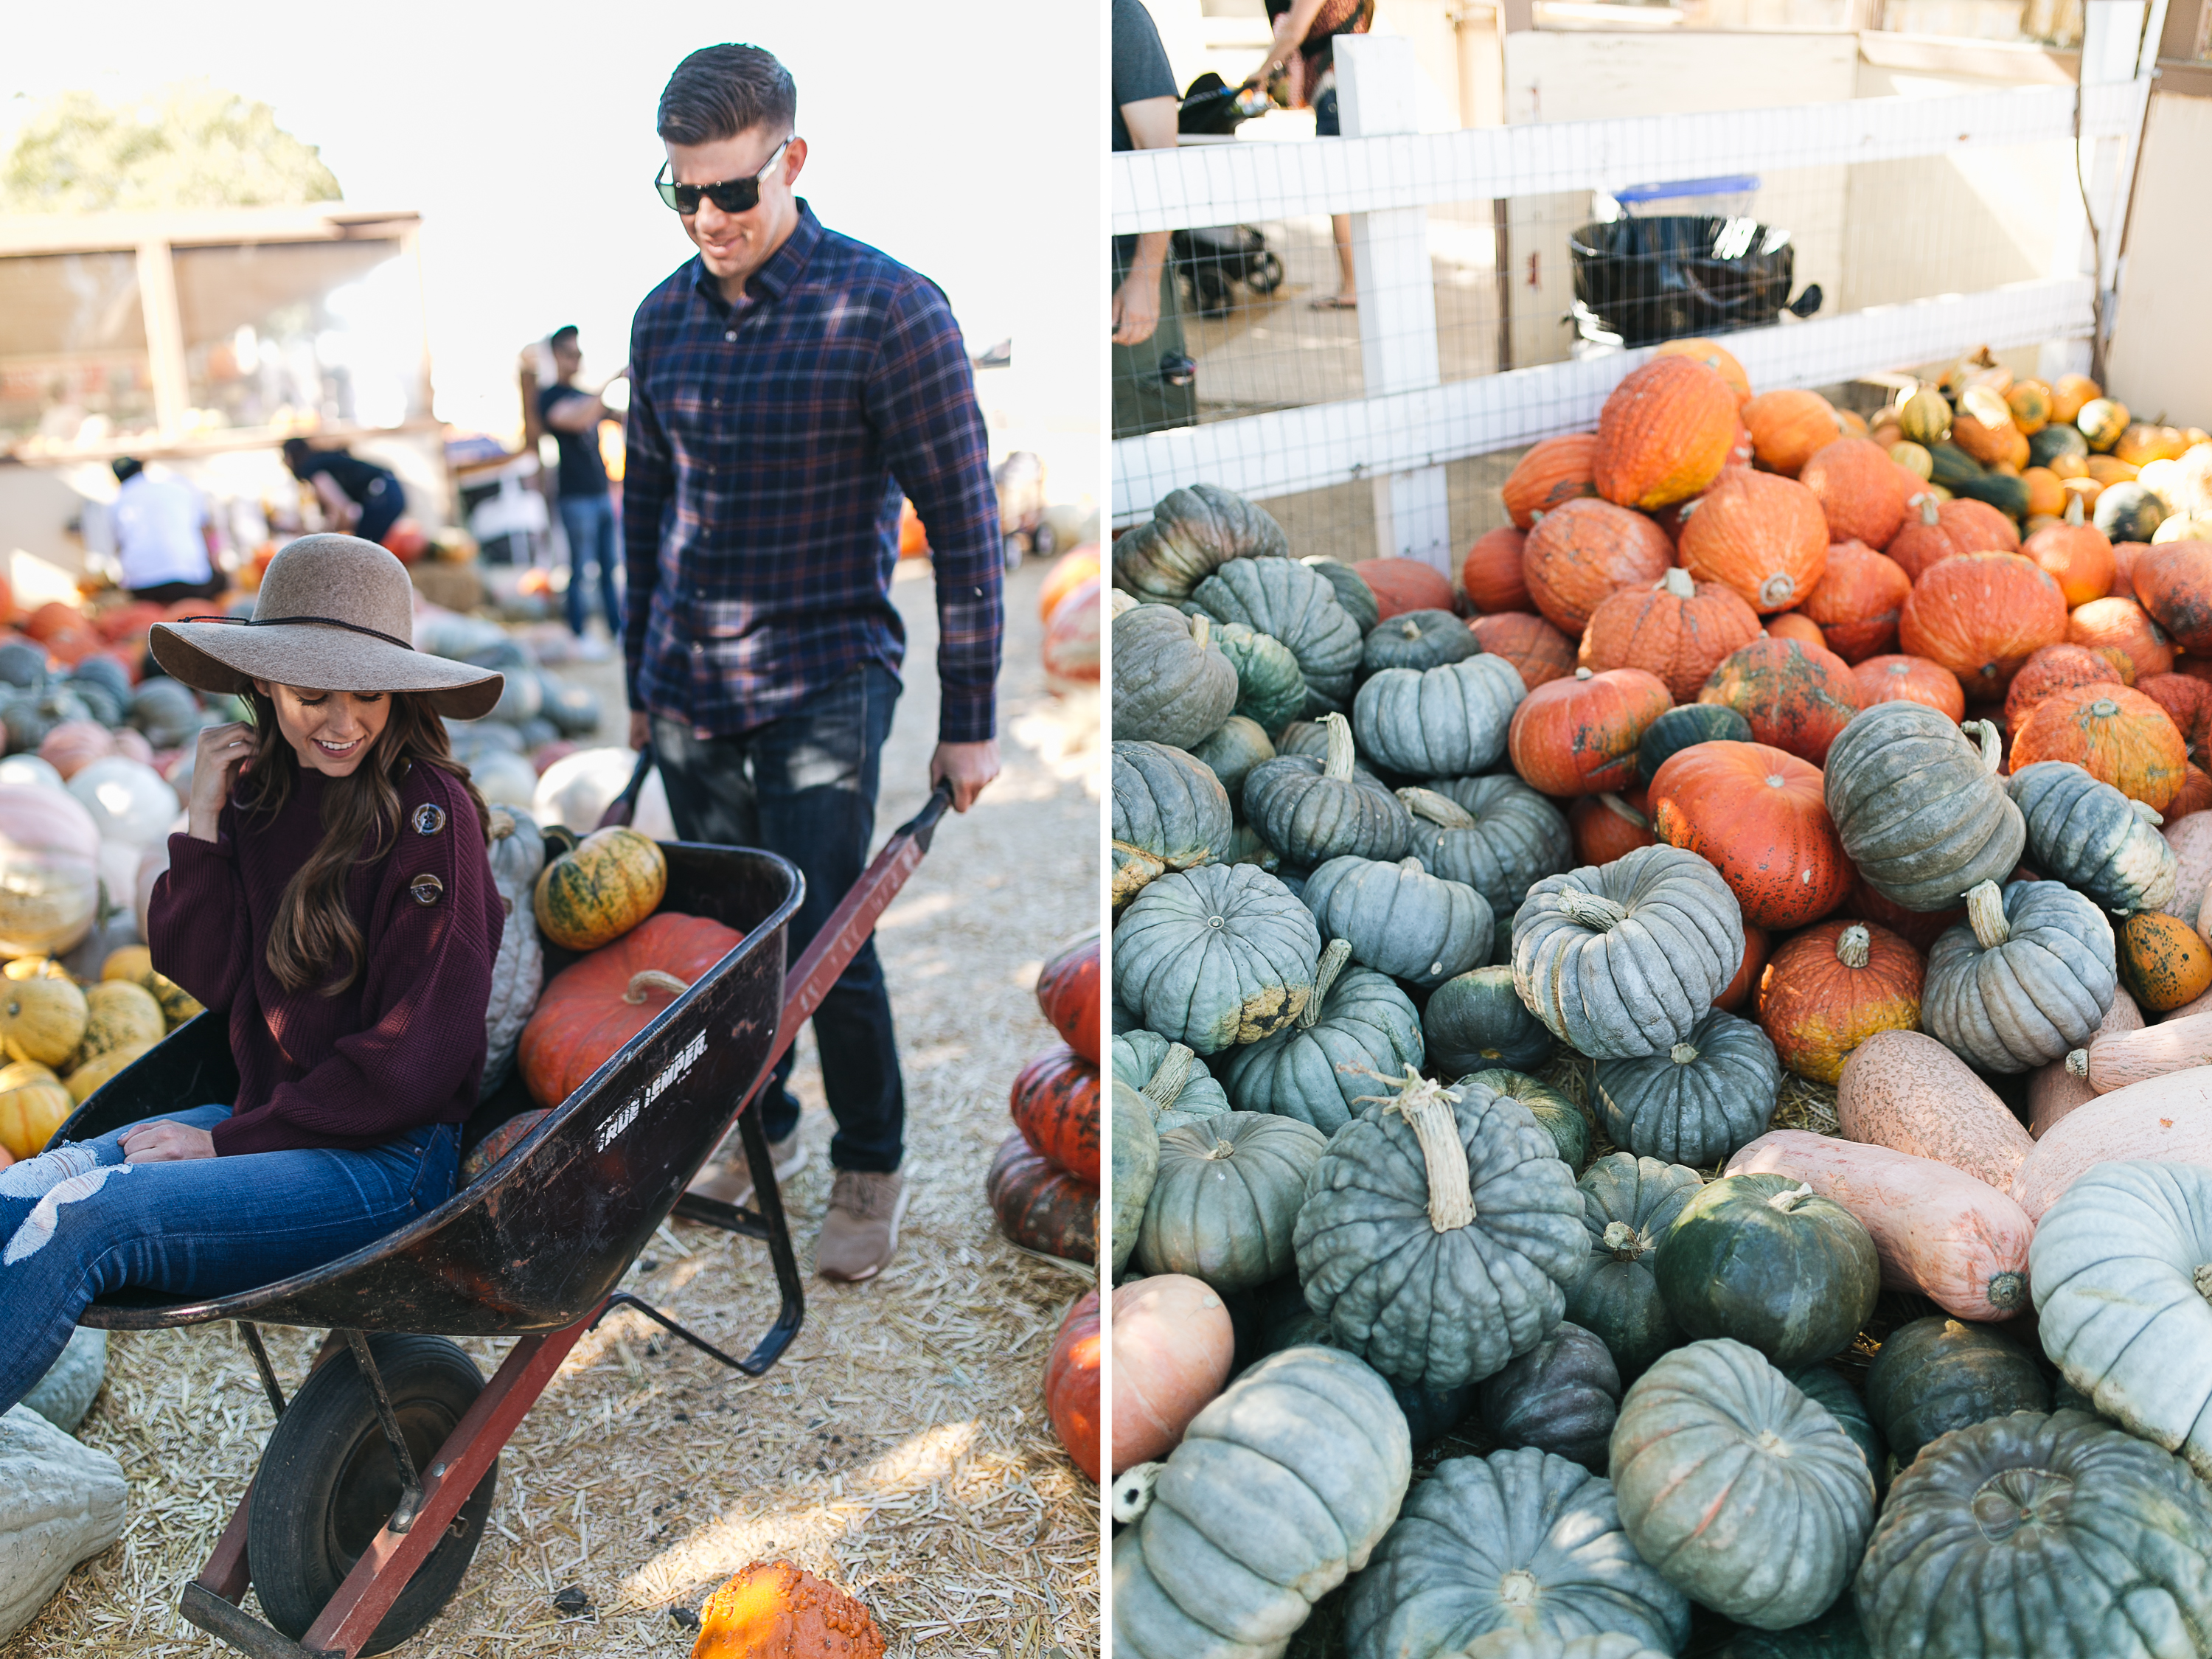 Style blogger Daryl-Ann Denner shares the key to coordinating outfits for a couple's shoot and wears Topshop sweater and hat at pumpkin patch